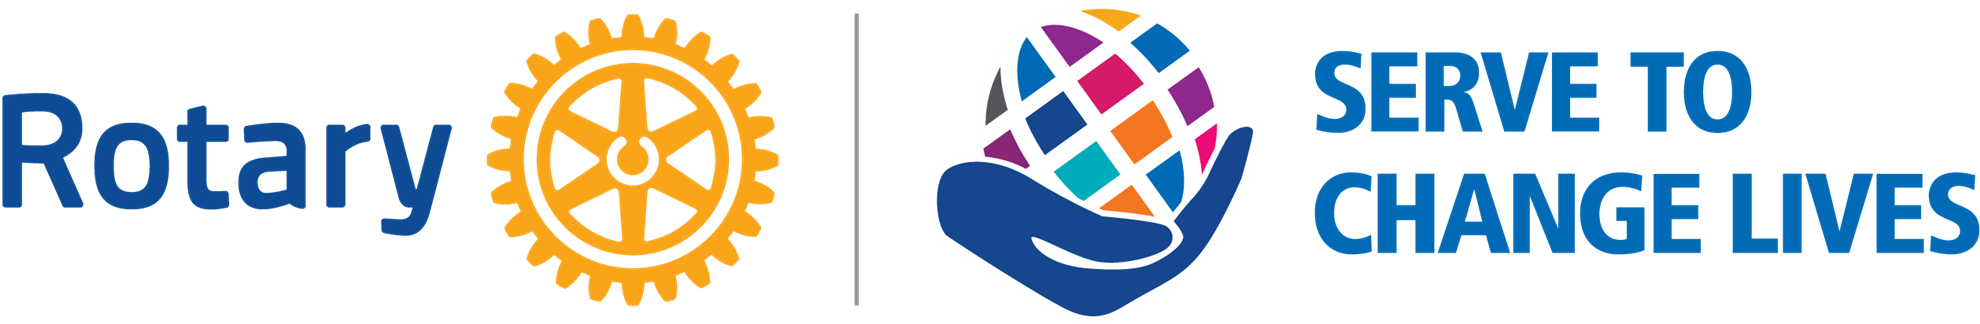 Rotary Logo and Serve to Change Lives logo